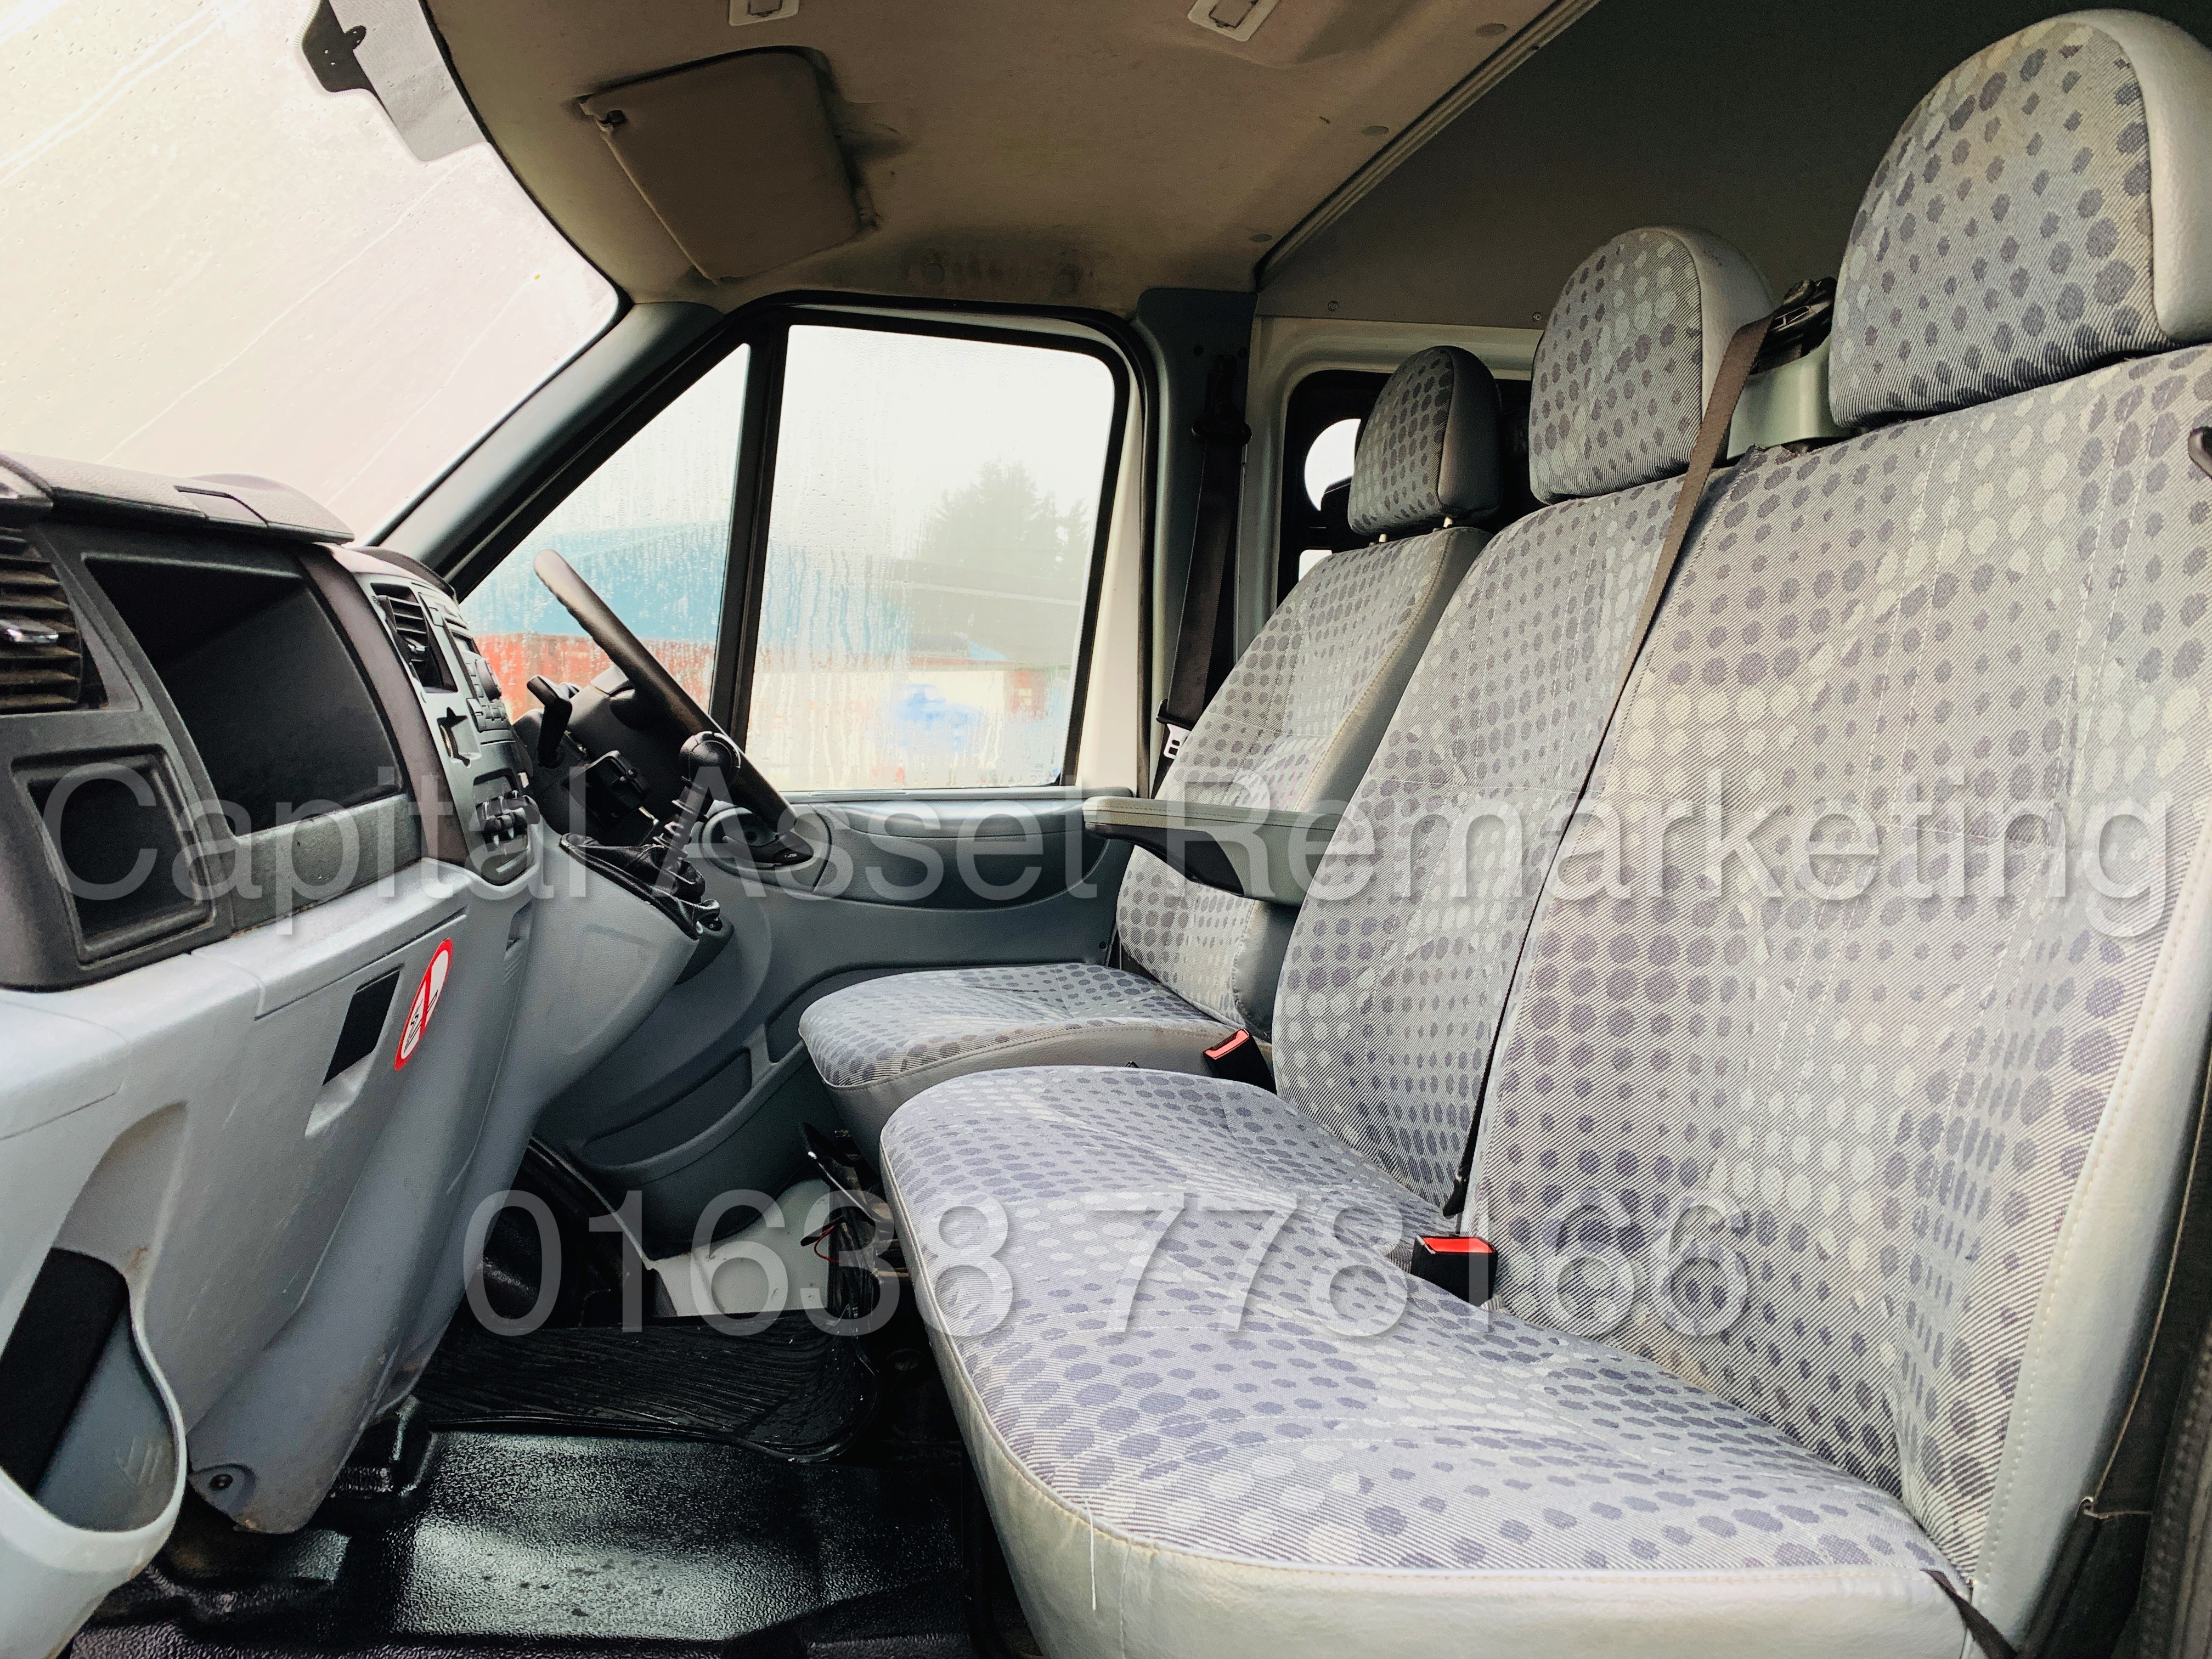 FORD TRANSIT T350 *LWB - 7 SEATER MESSING UNIT* (2014 MODEL) '2.4 TDCI - 6 SPEED' *ON BOARD TOILET* - Image 18 of 44